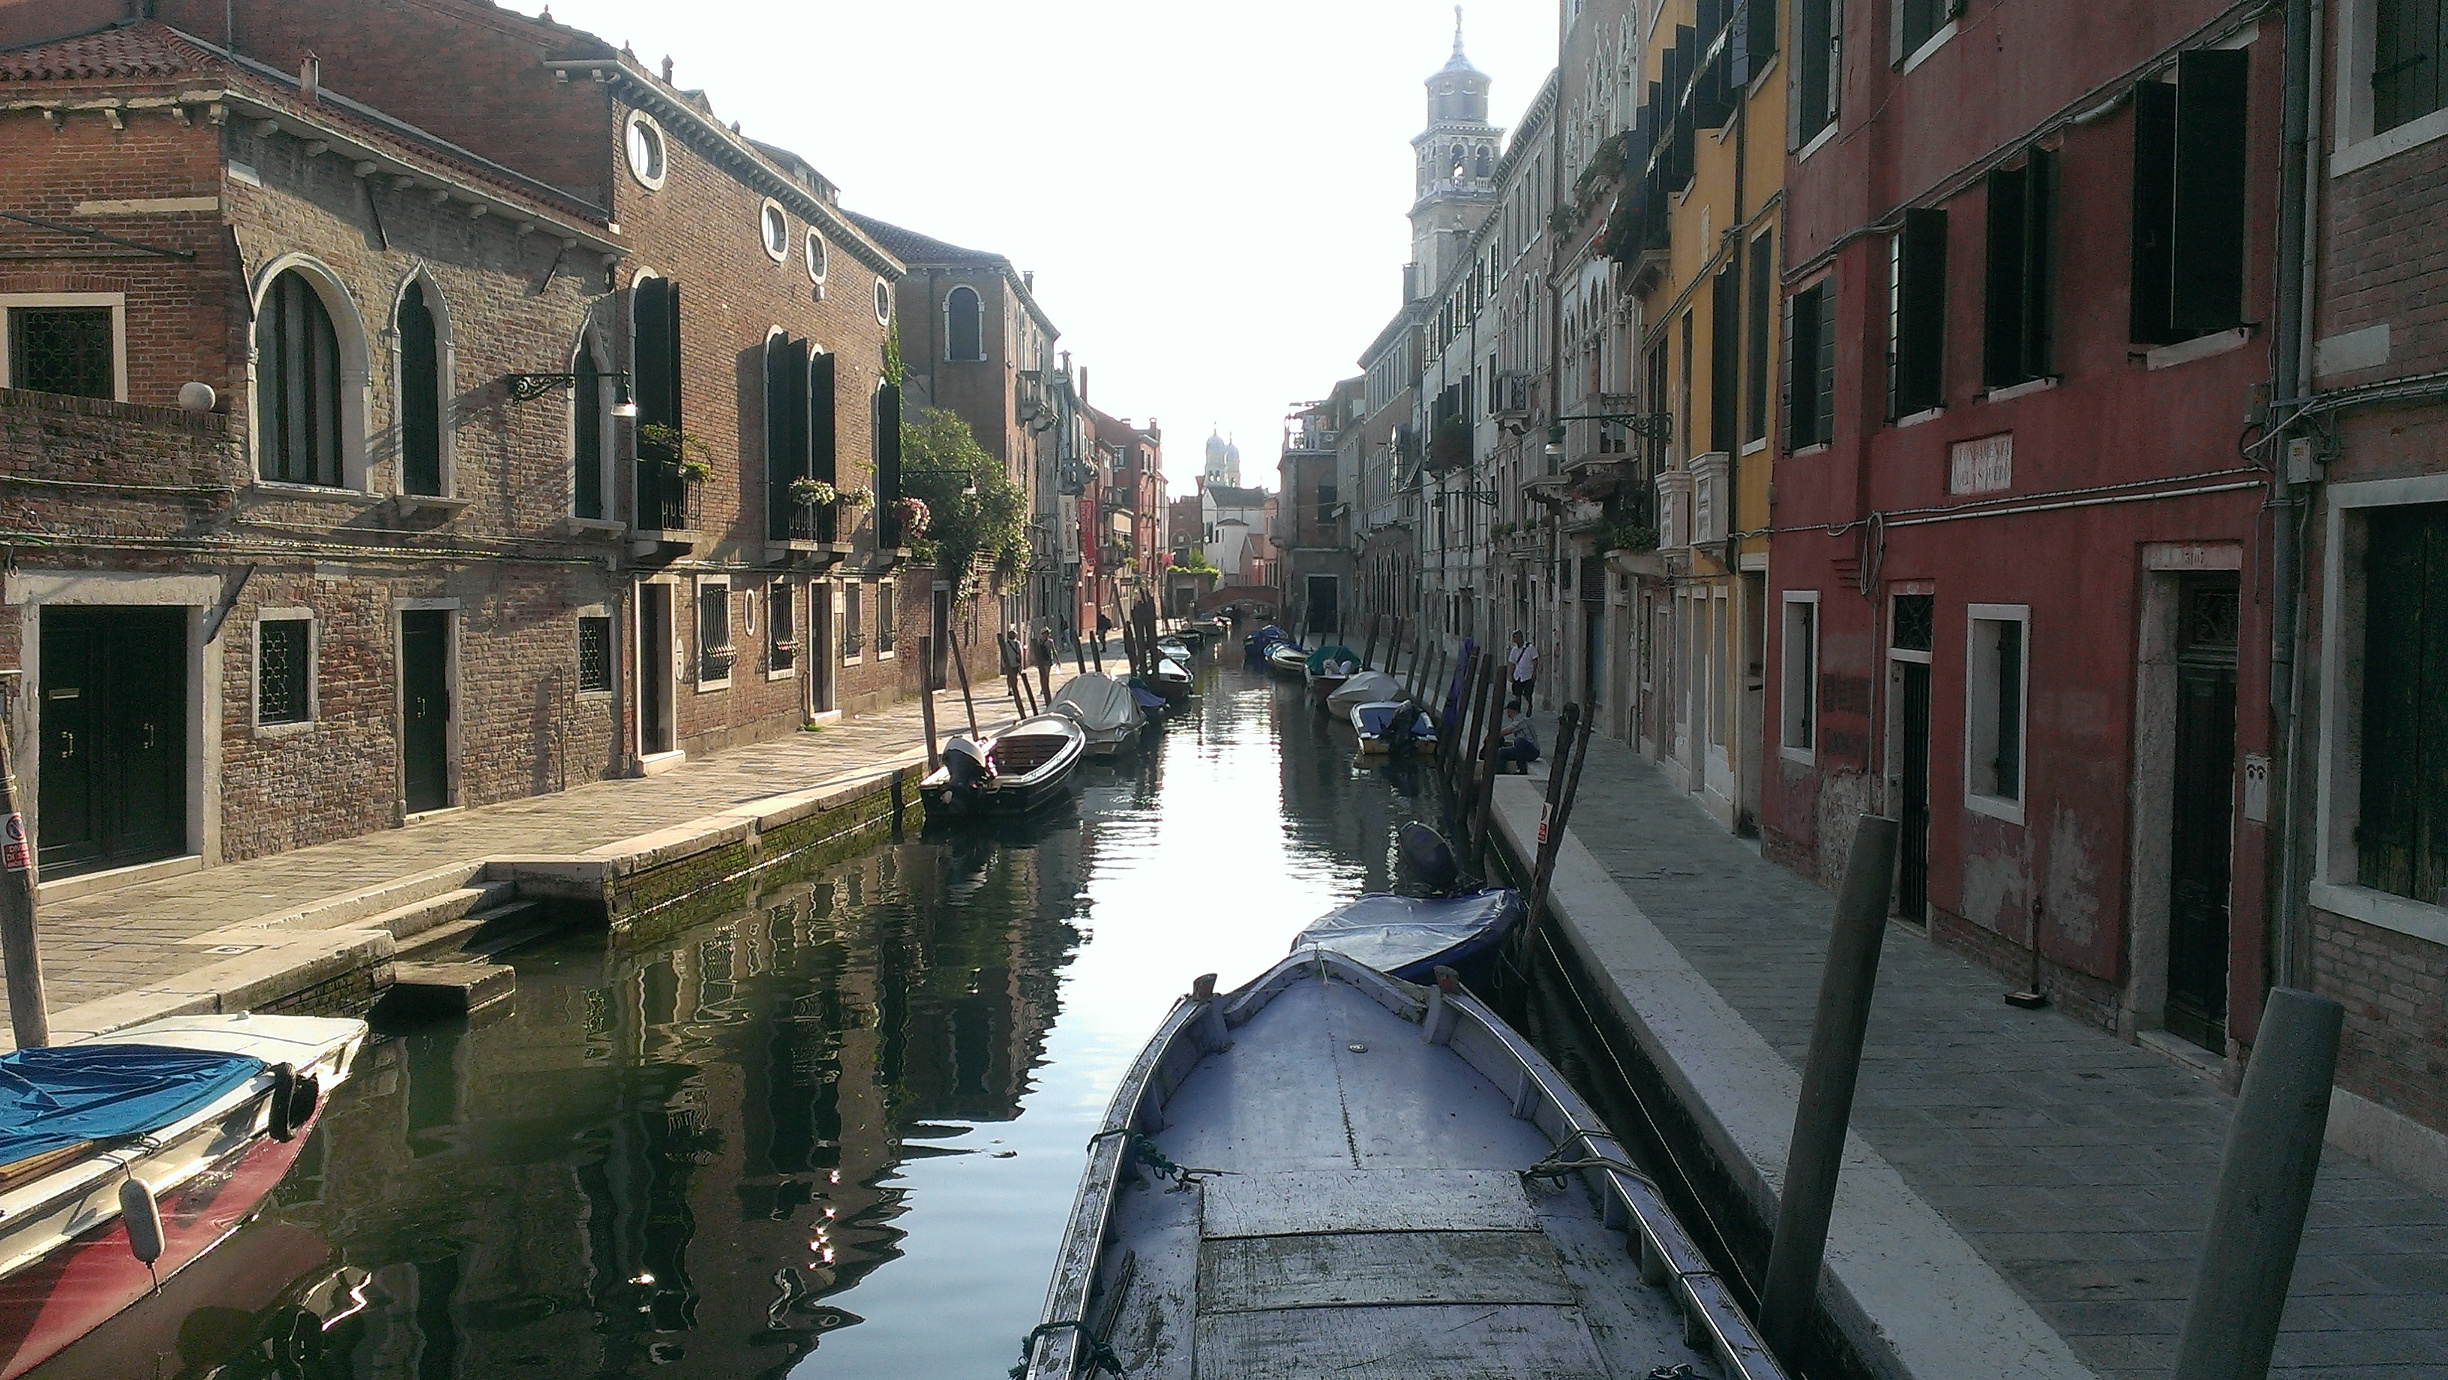 Picture by James Donnell of canal in Venice, Italy.